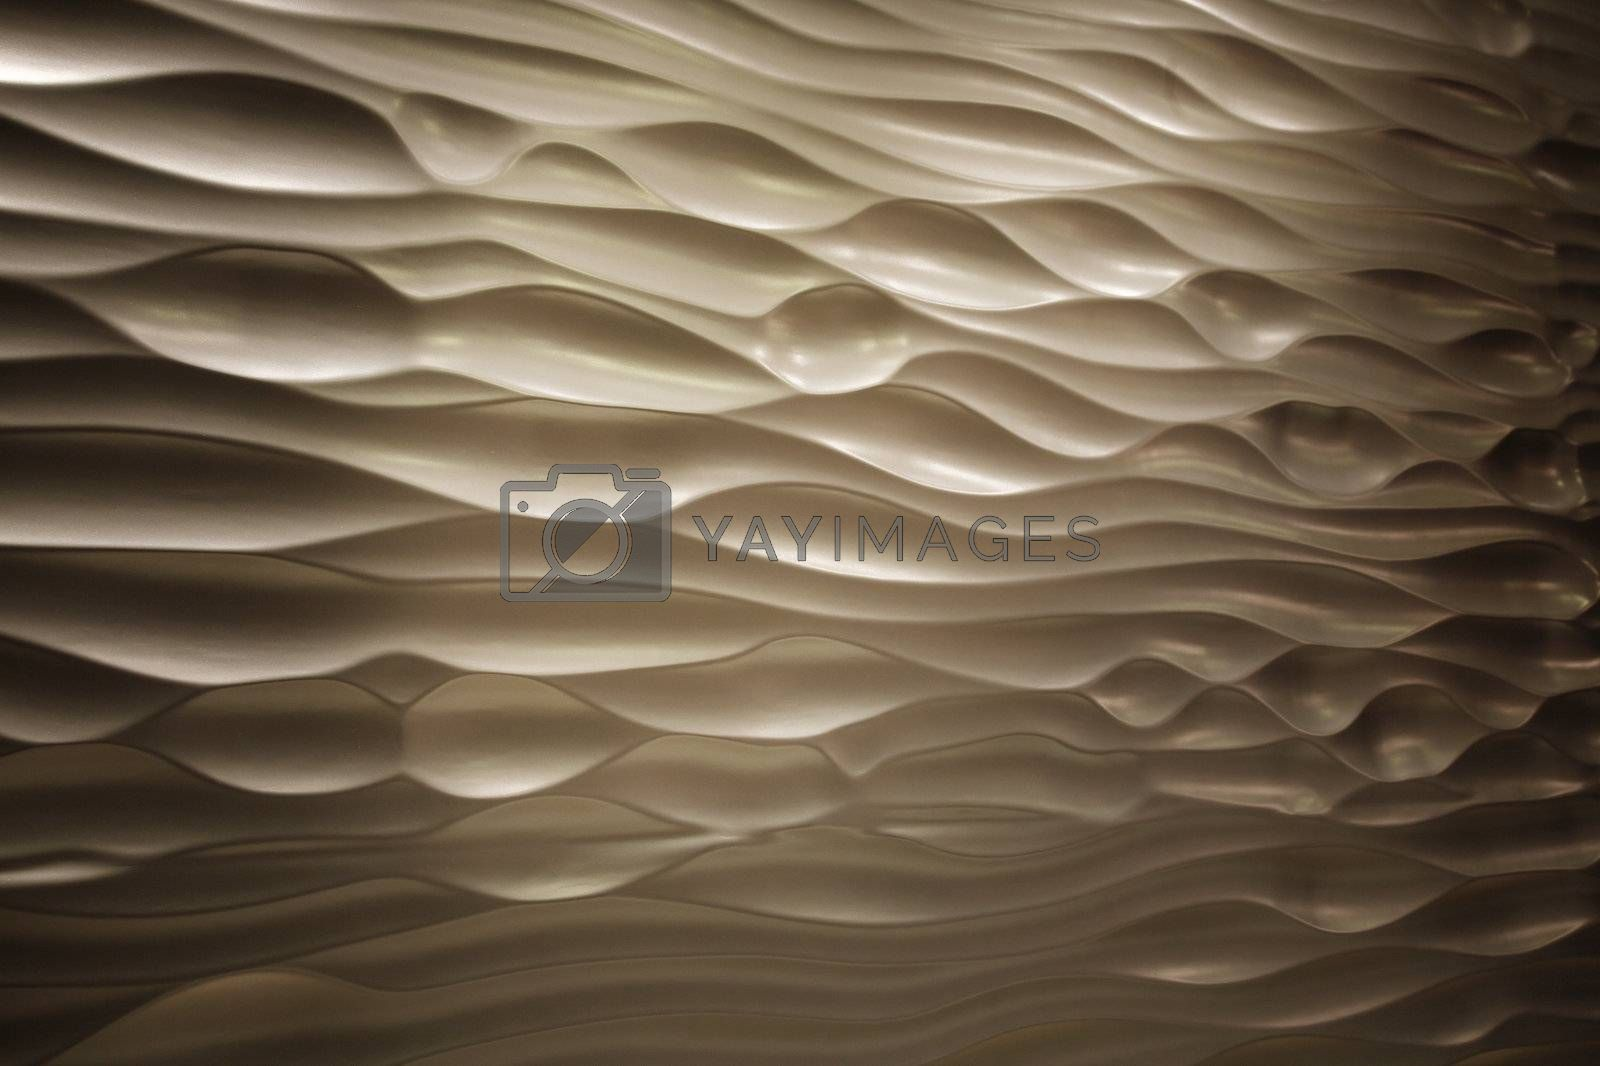 wave pattern craft on the wooden surface